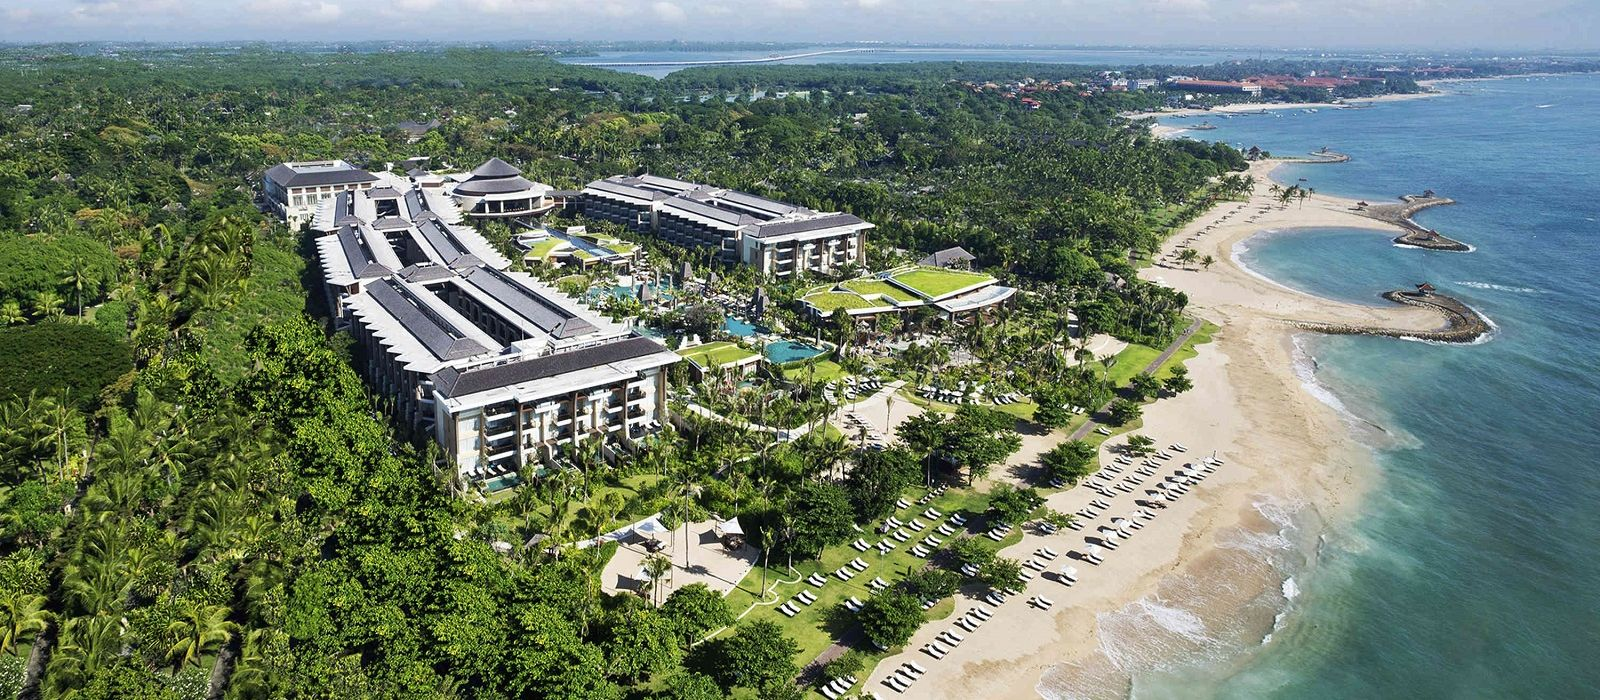 Sofitel Bali Nusa Dua Beach Resort Enchanting Travels